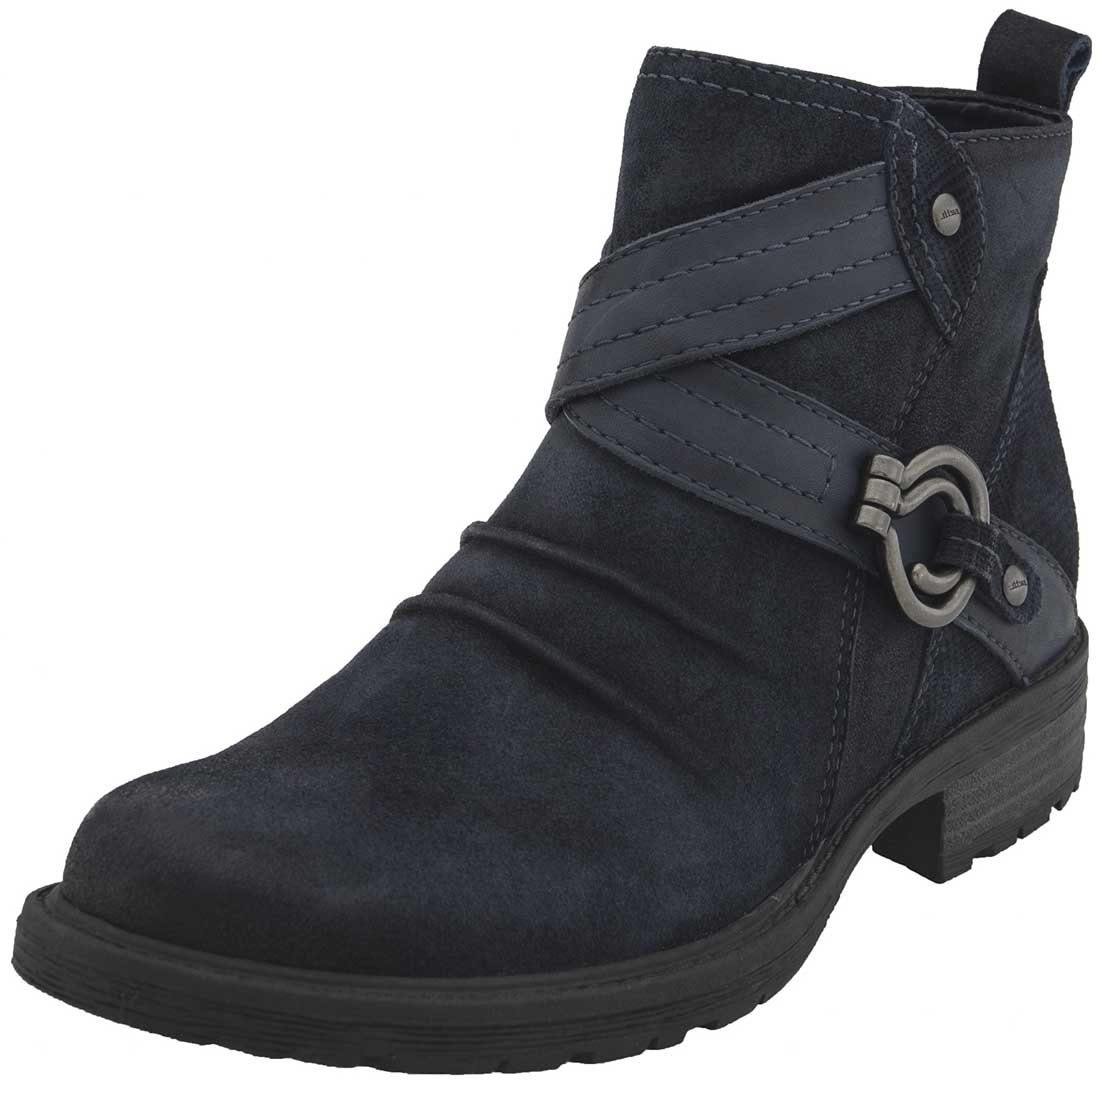 Earth Womens Laurel Leather Almond Toe Ankle Combat Boots B06W5615XP 6.5 B(M) US|Navy Suede